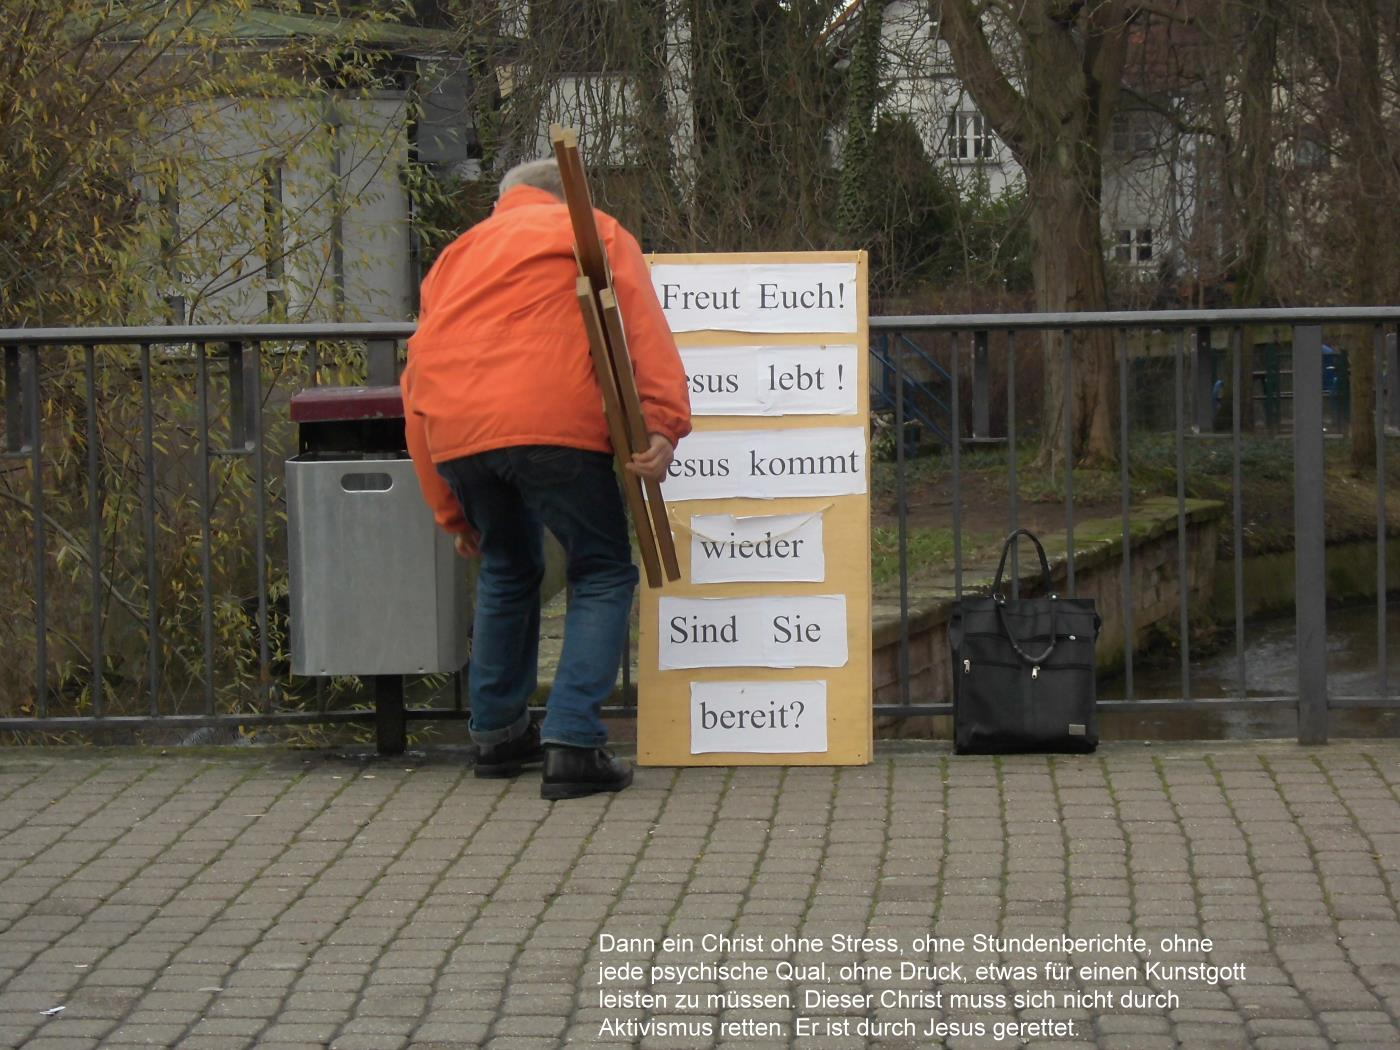 Wiesloch: Jehovah's Witnesses, Christians and Muslims